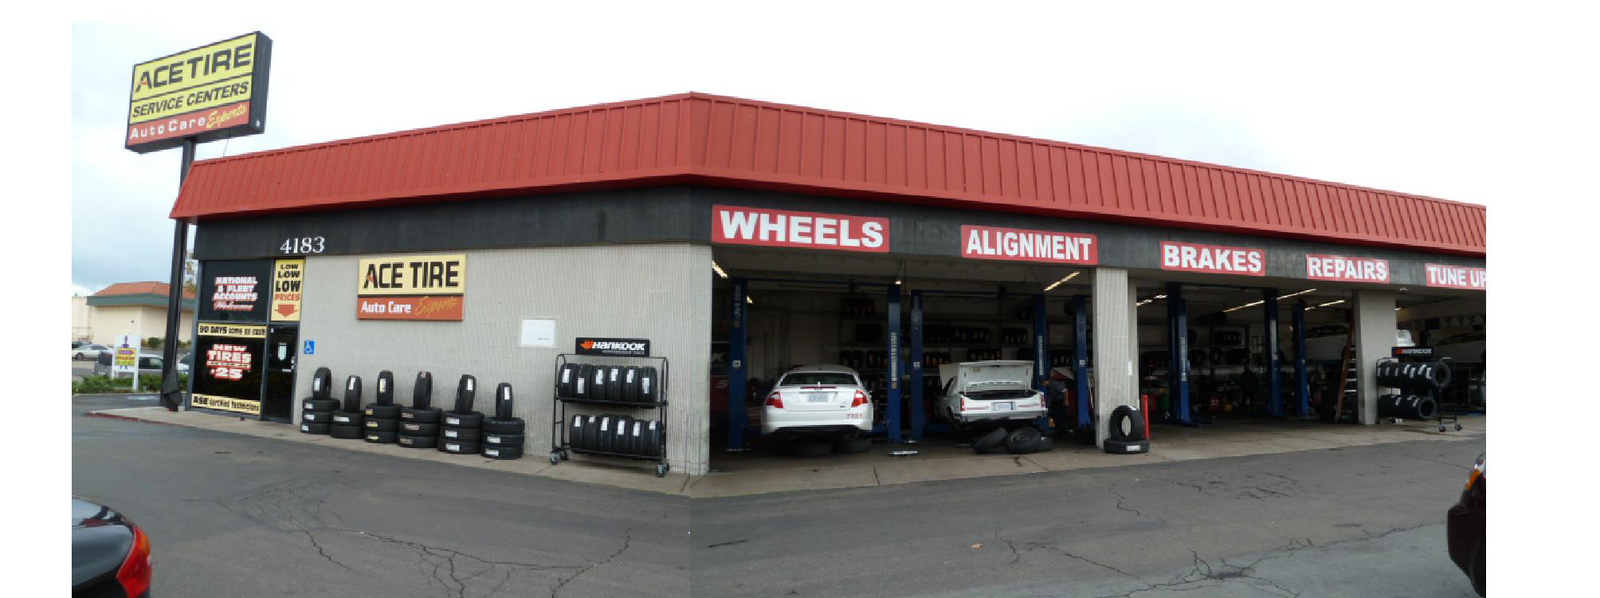 ACE TIRE CENTERS of KEARNY MESA